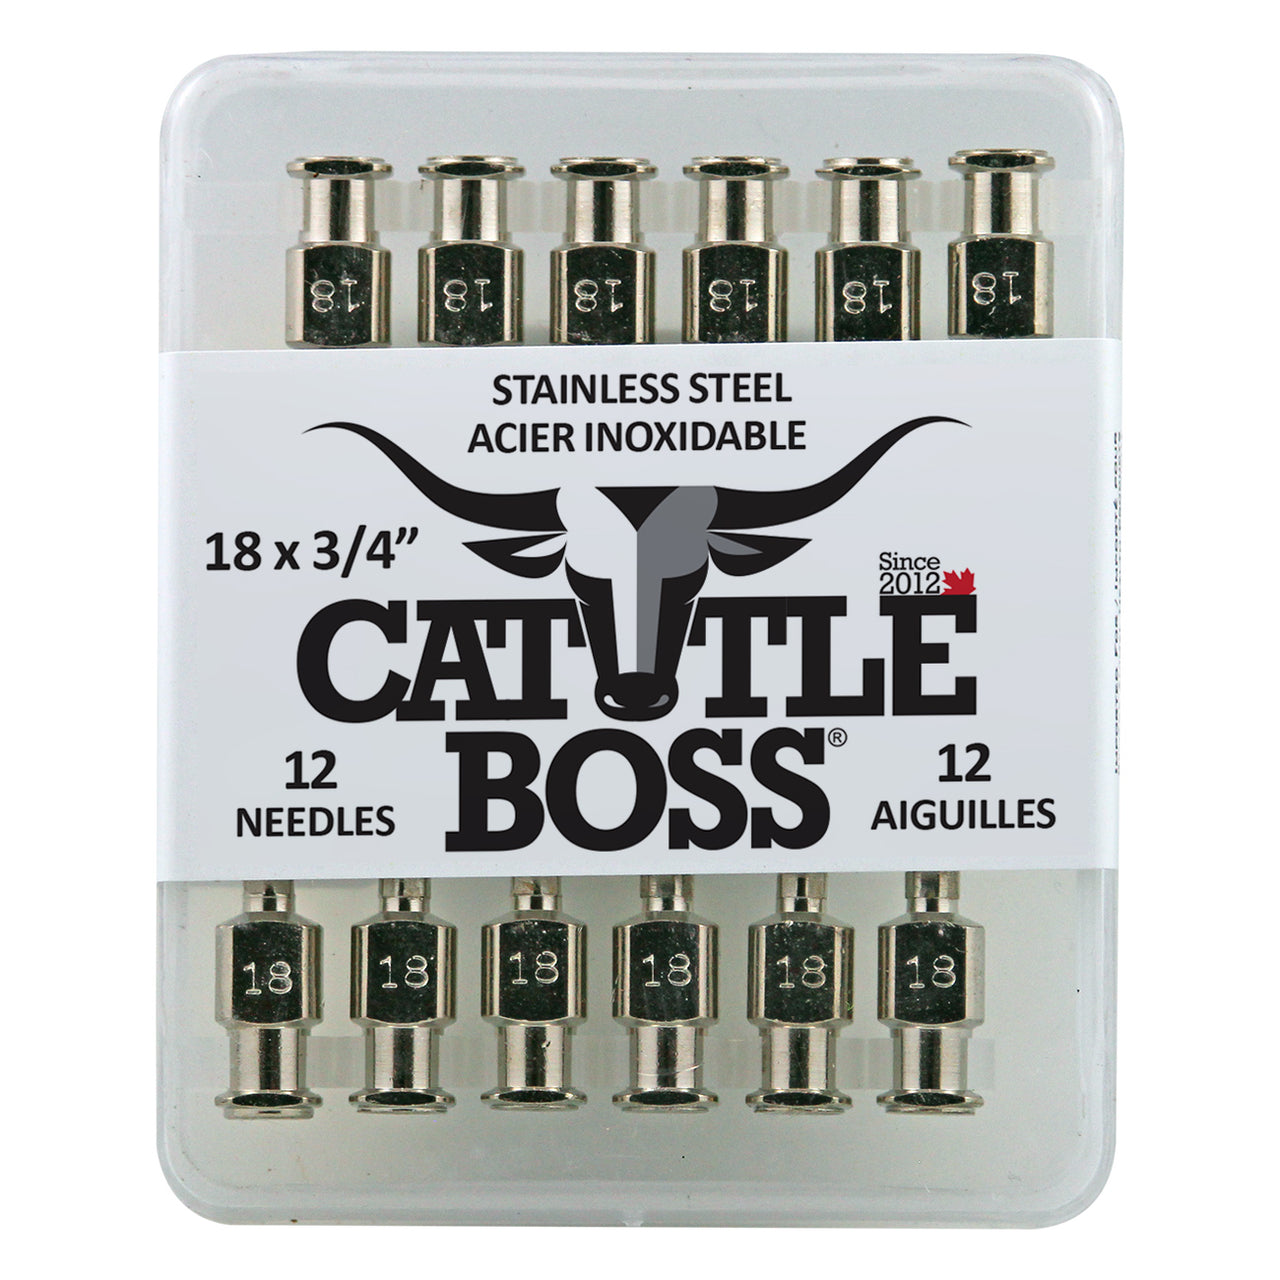 Cattle Boss stainless steel hub needle (12 pack) 18x3/4 - Remedy Animal Health Products Ltd.